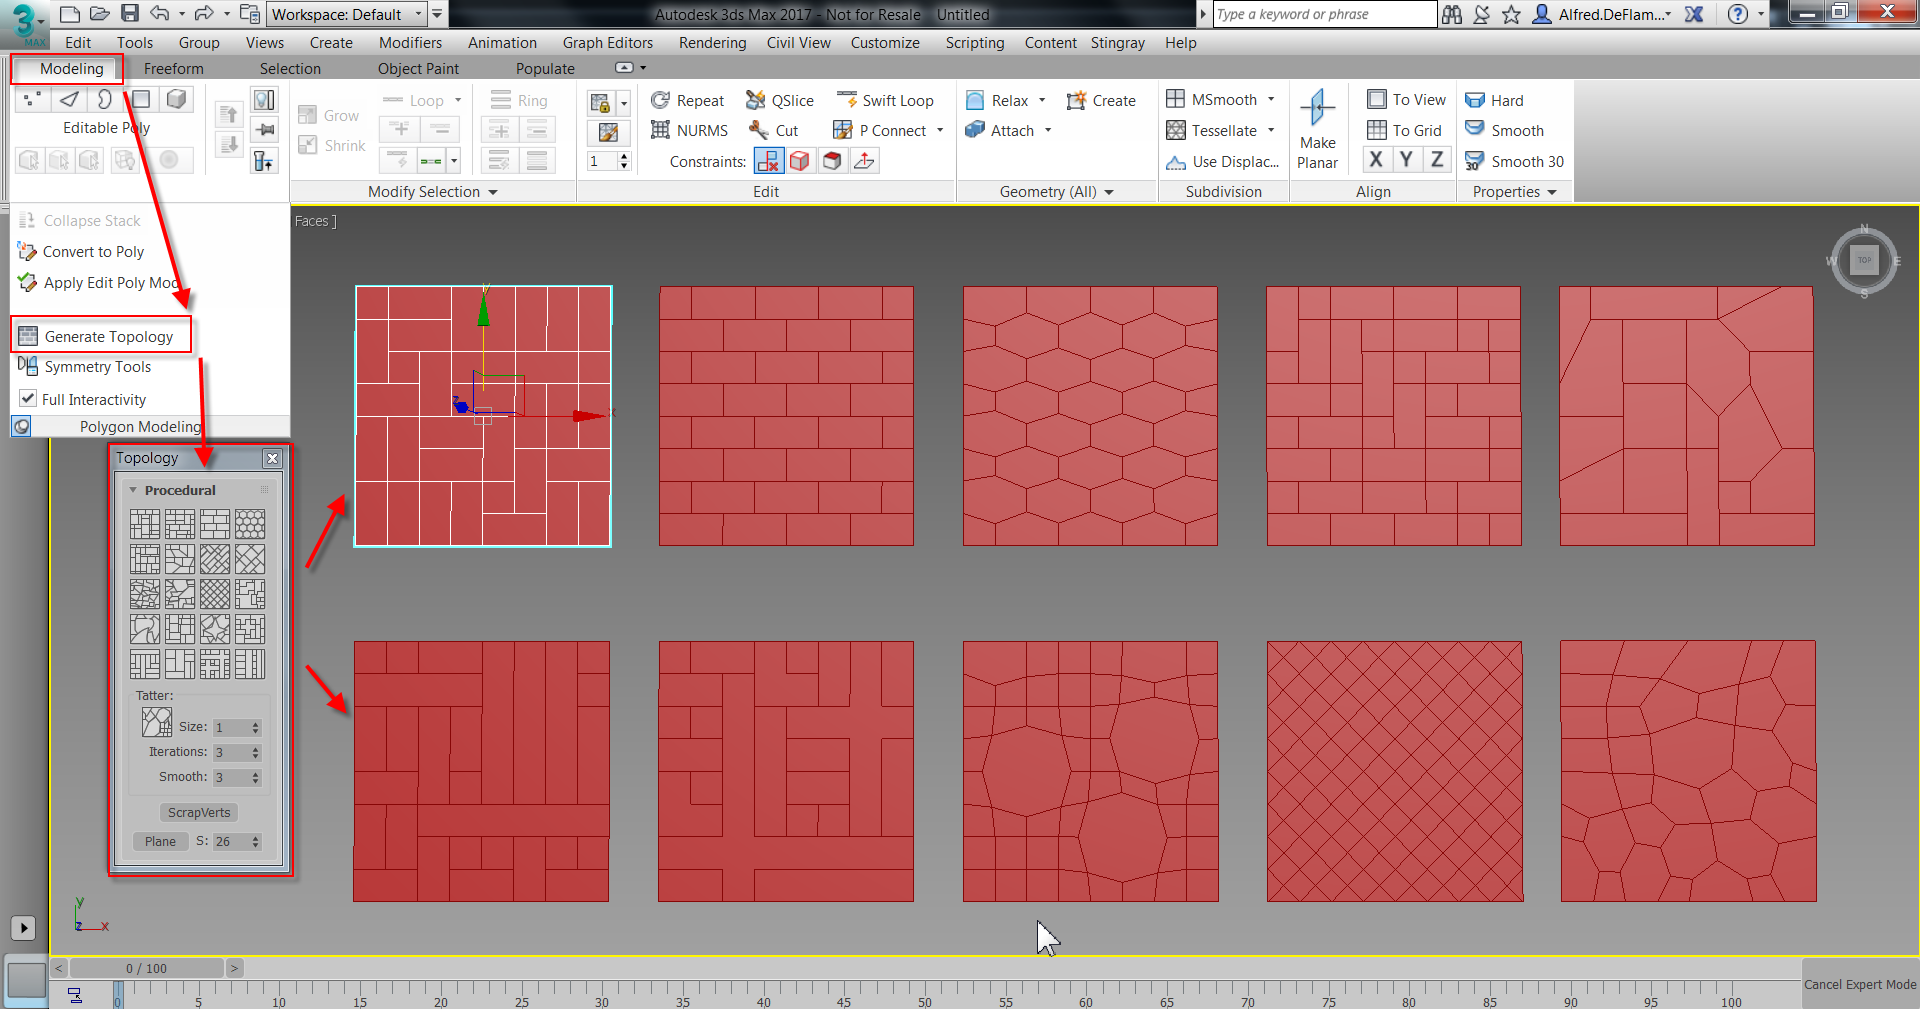 Solved: Changing workspaces in 3ds Max - Autodesk Community